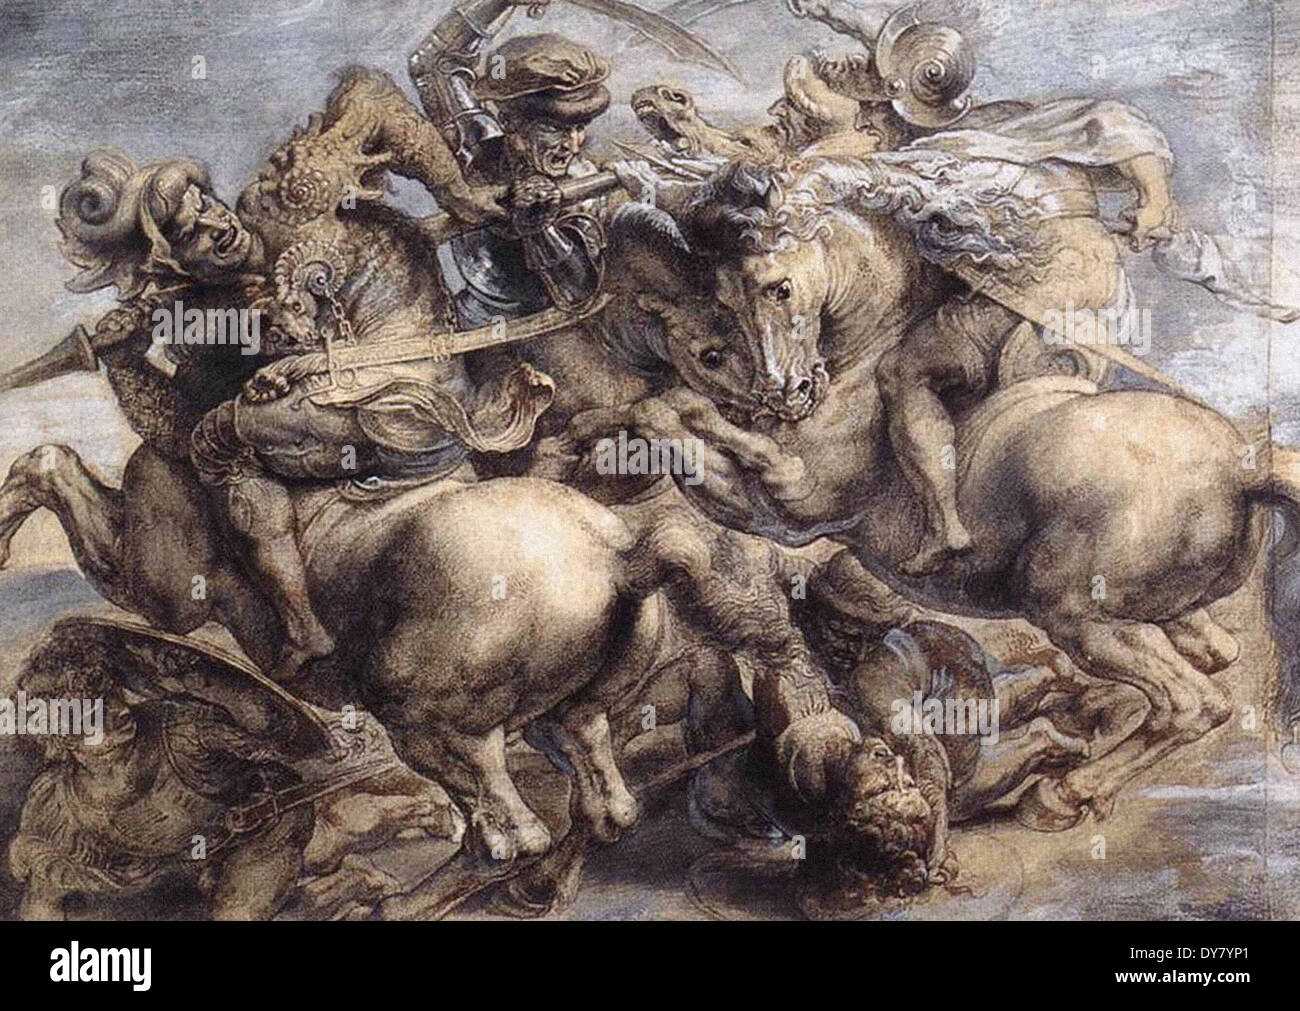 Leonardo da Vinci The Battle of Anghiari - Stock Image